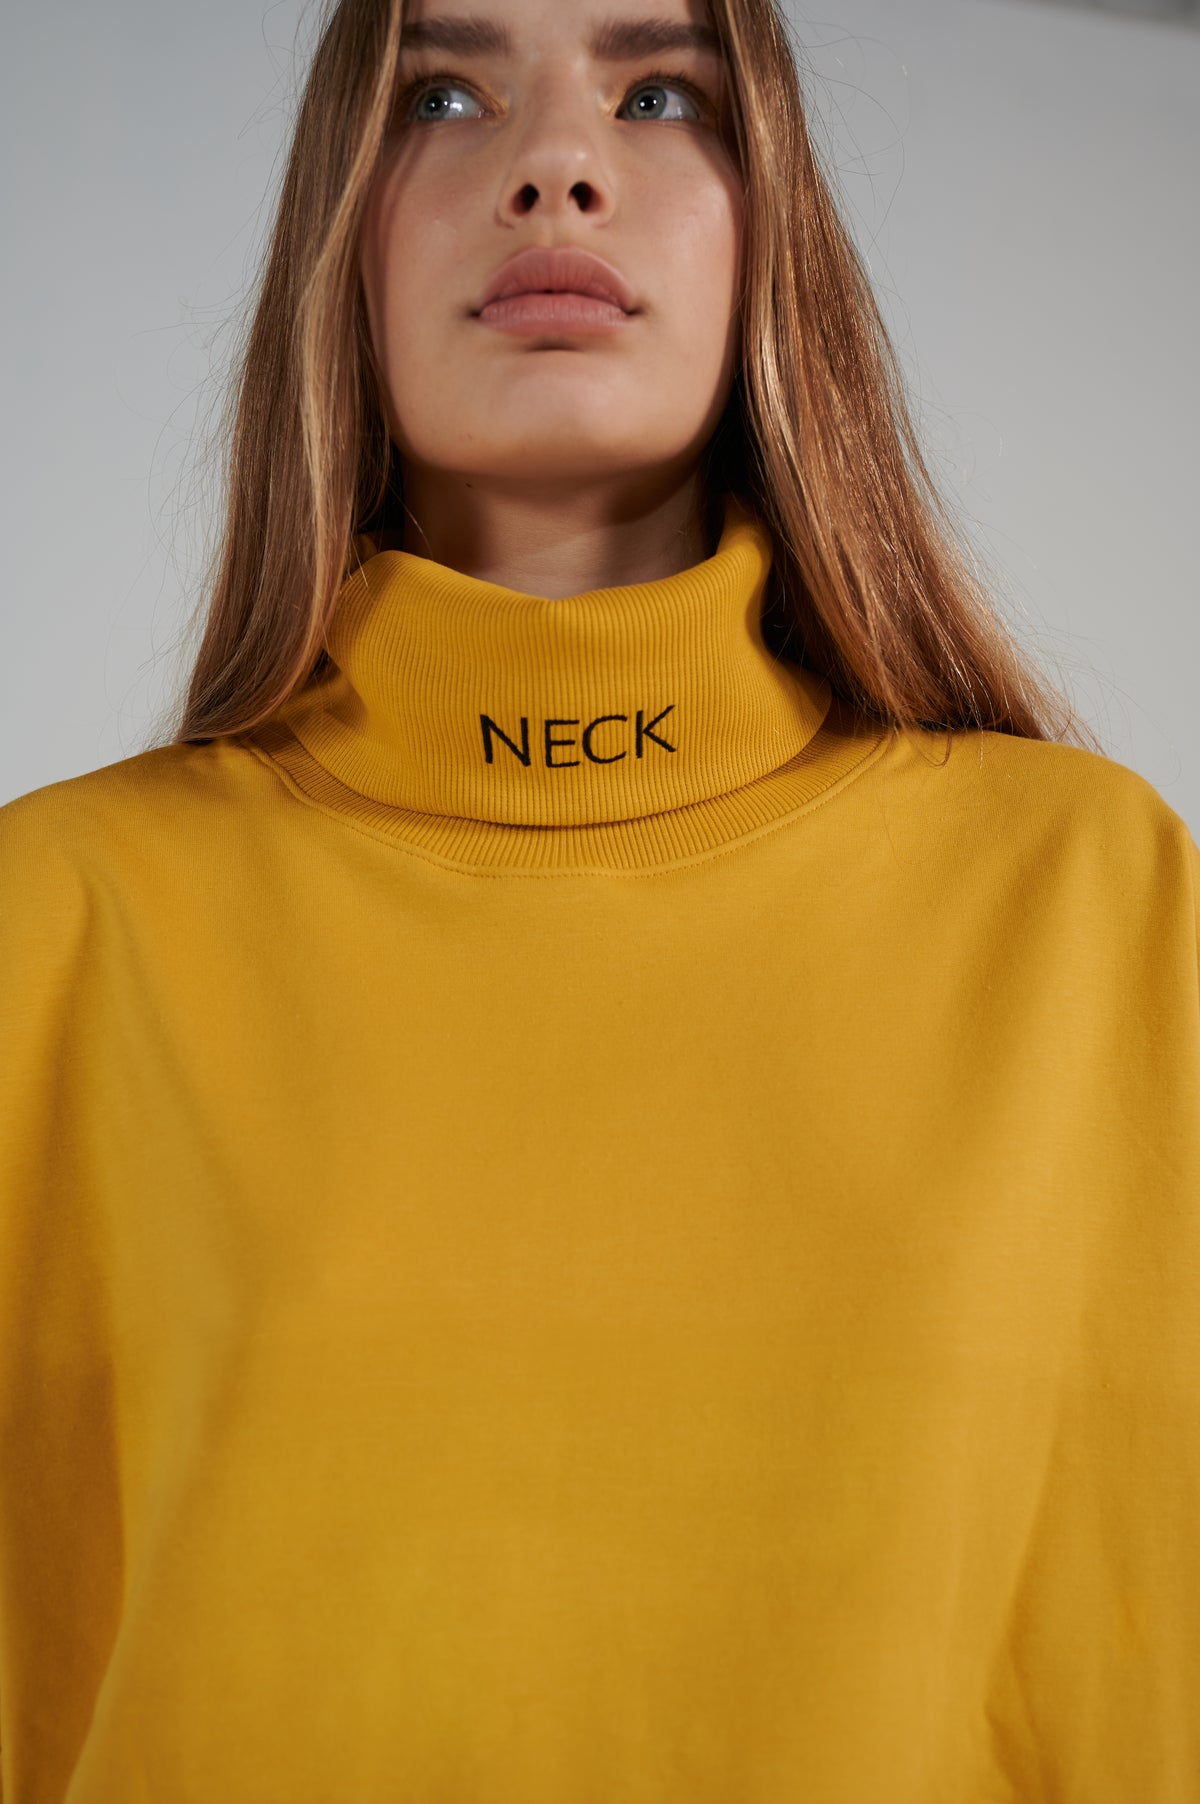 mustard-le-slap-turtleneck-oversize-sweater-lookbook.jpg